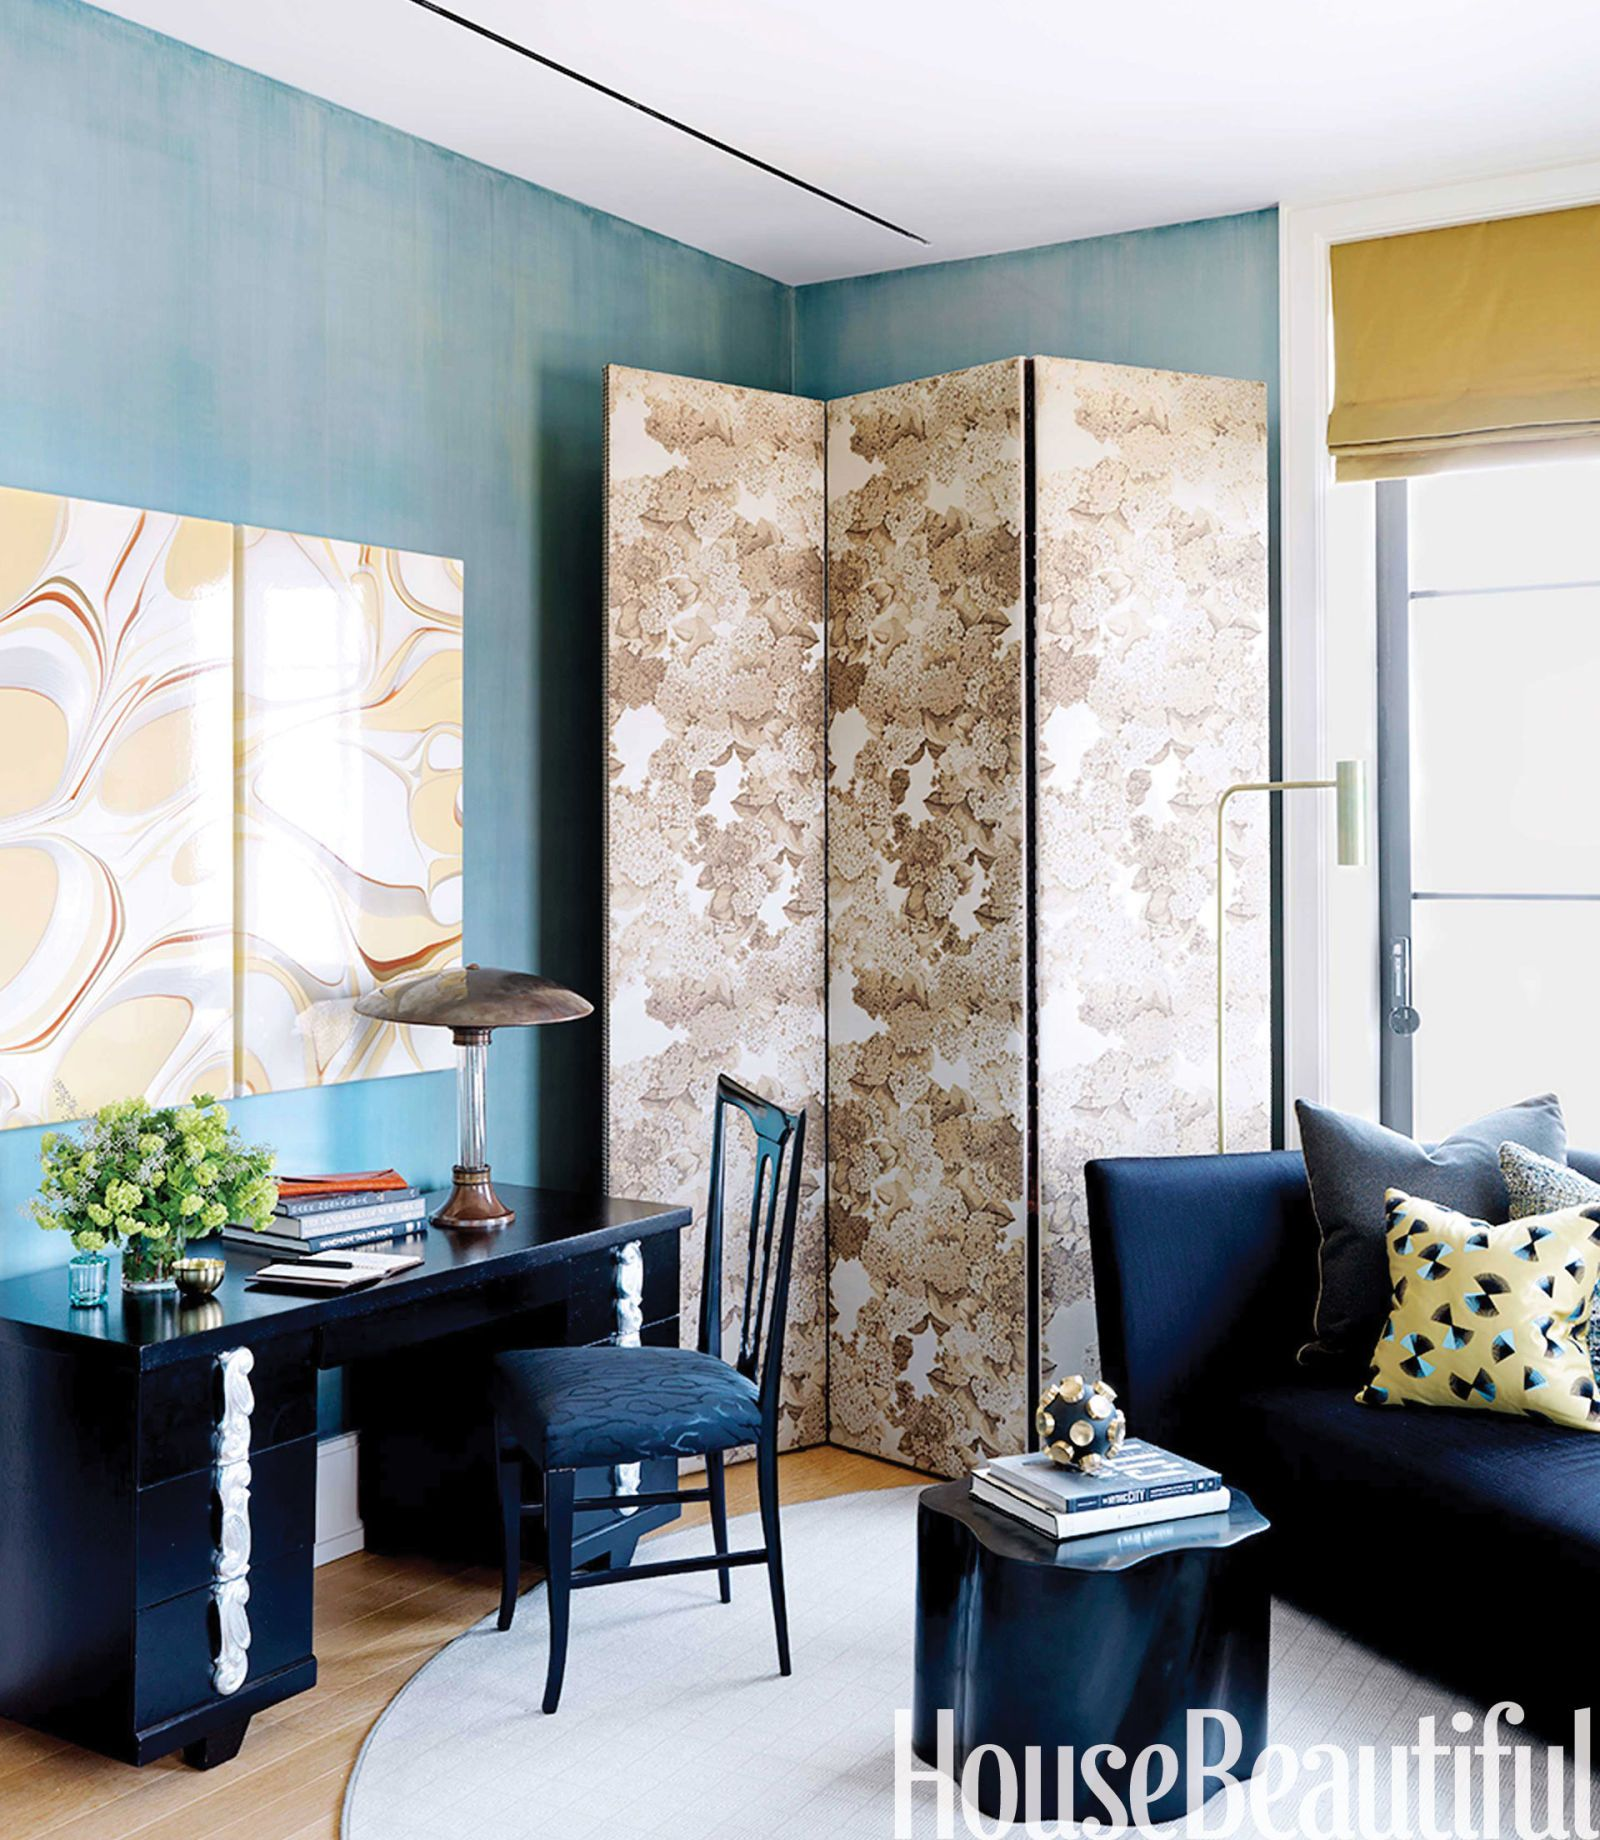 Paint color ideas for office Walls 12 Colorful Home Offices House Beautiful Colors For Home Offices Paint Color Ideas For Home Offices